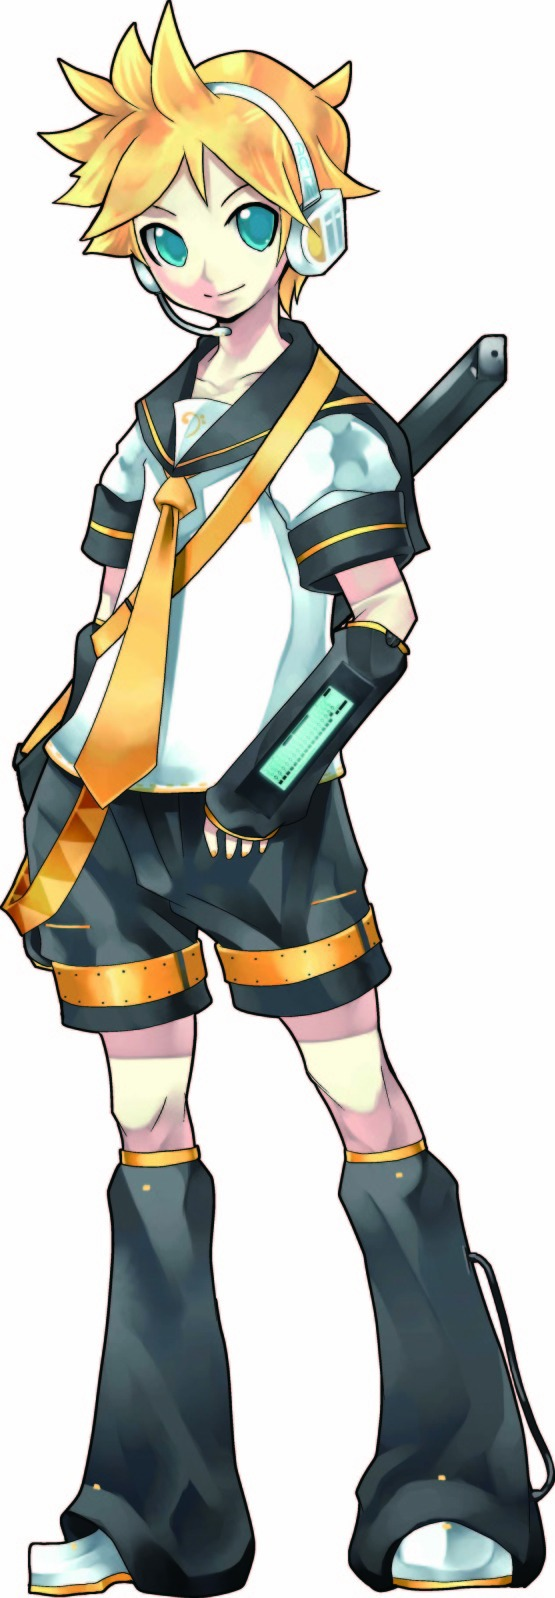 len kagamine - Vocaloids Photo (33217564) - Fanpop